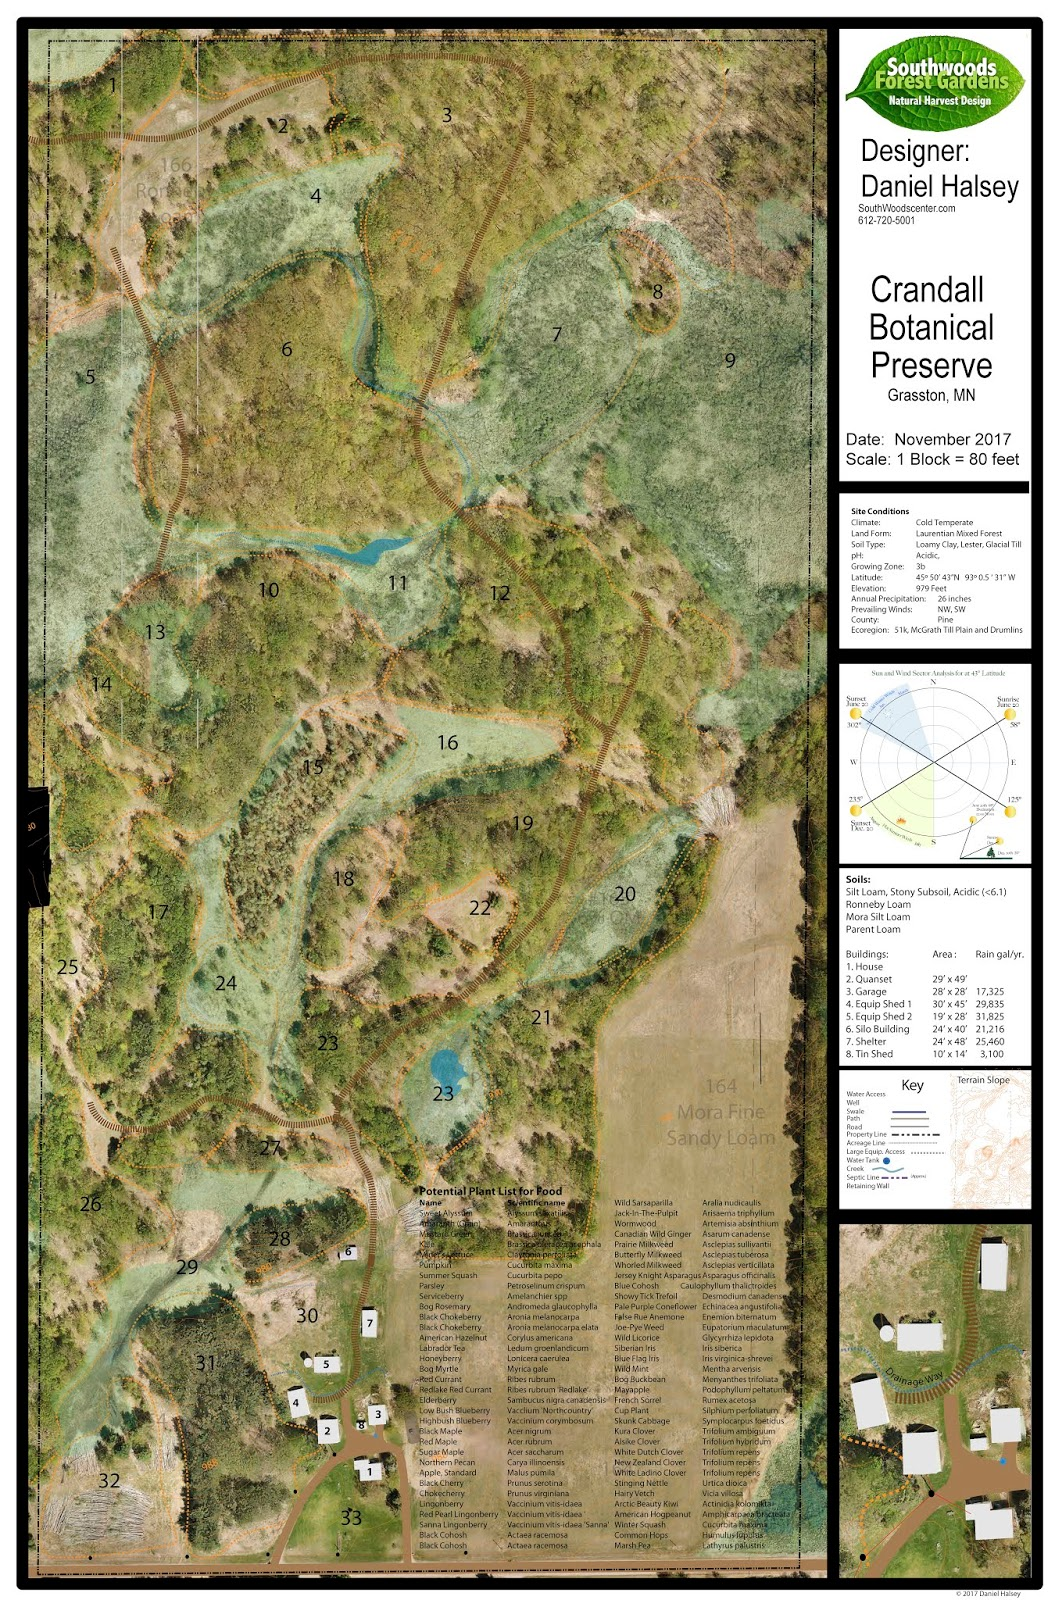 designer daniel halsey is advised and working with local botanists ecologists expert plant foragers and the minnesota dnr